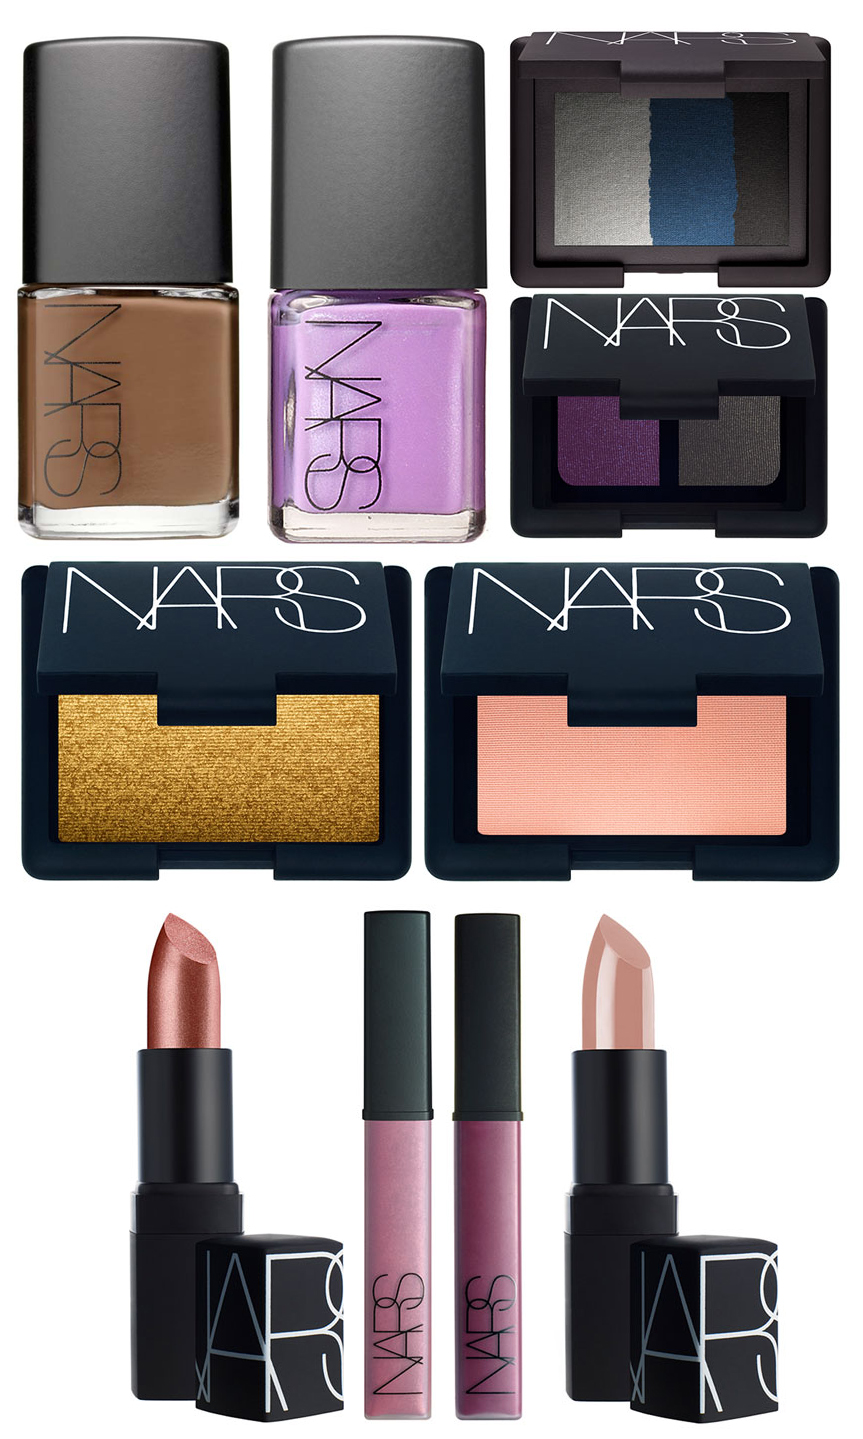 NARS Holiday 2010 Collection